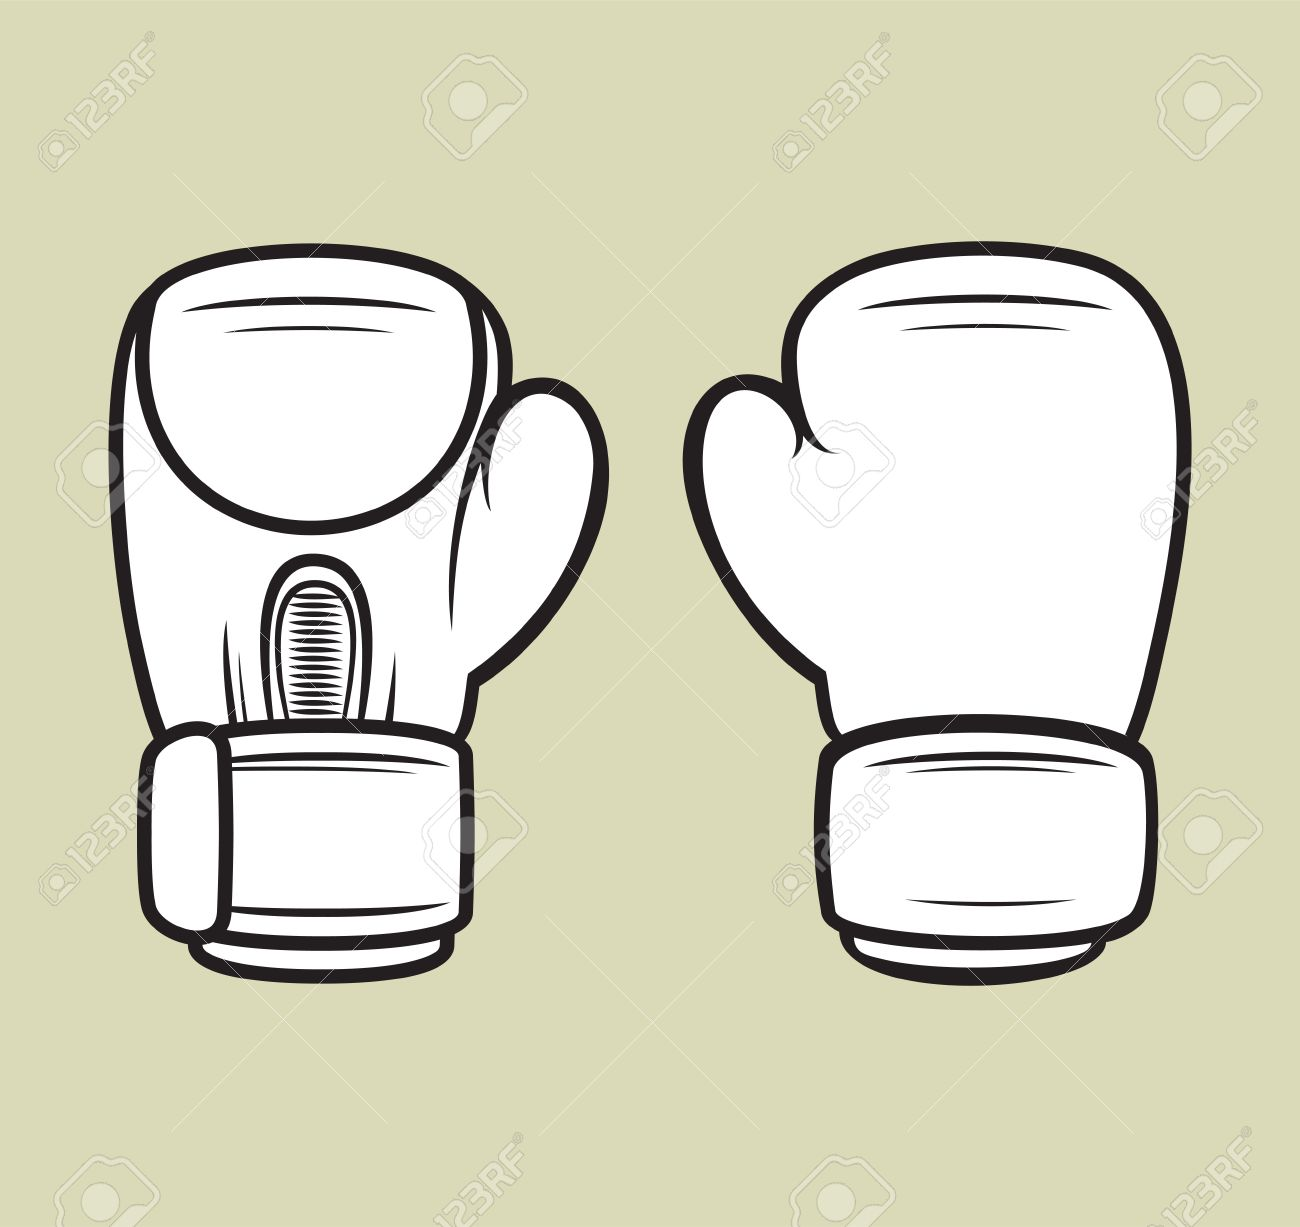 boxing gloves royalty free cliparts vectors and stock illustration rh 123rf com boxing glove vector art boxing glove vector art